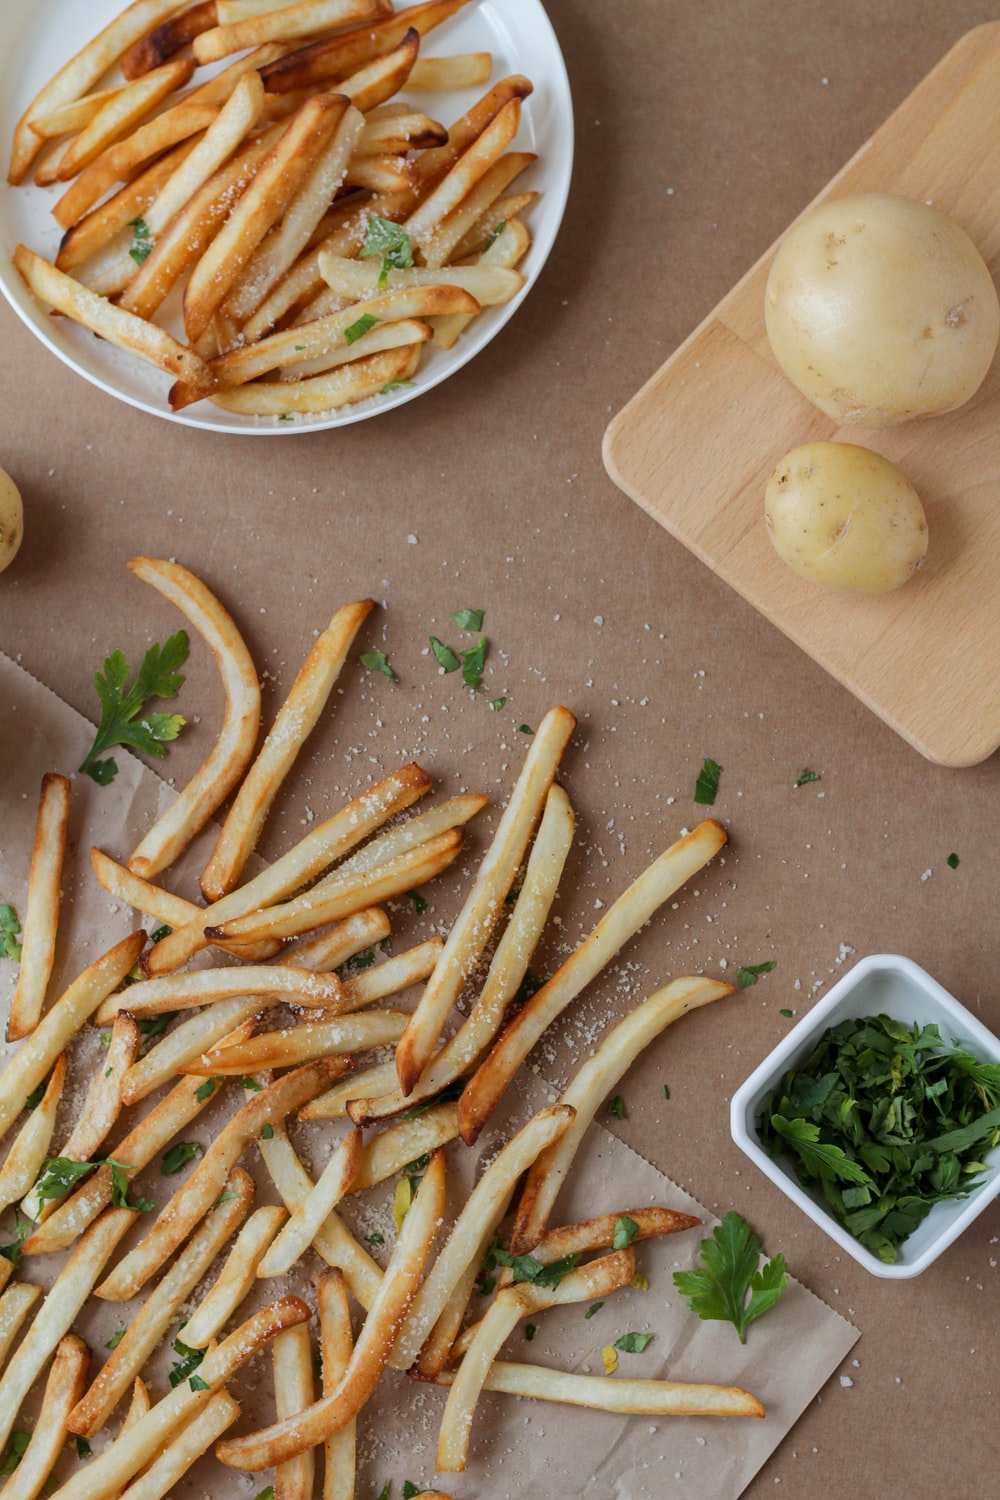 fried fries on white ceramic plate